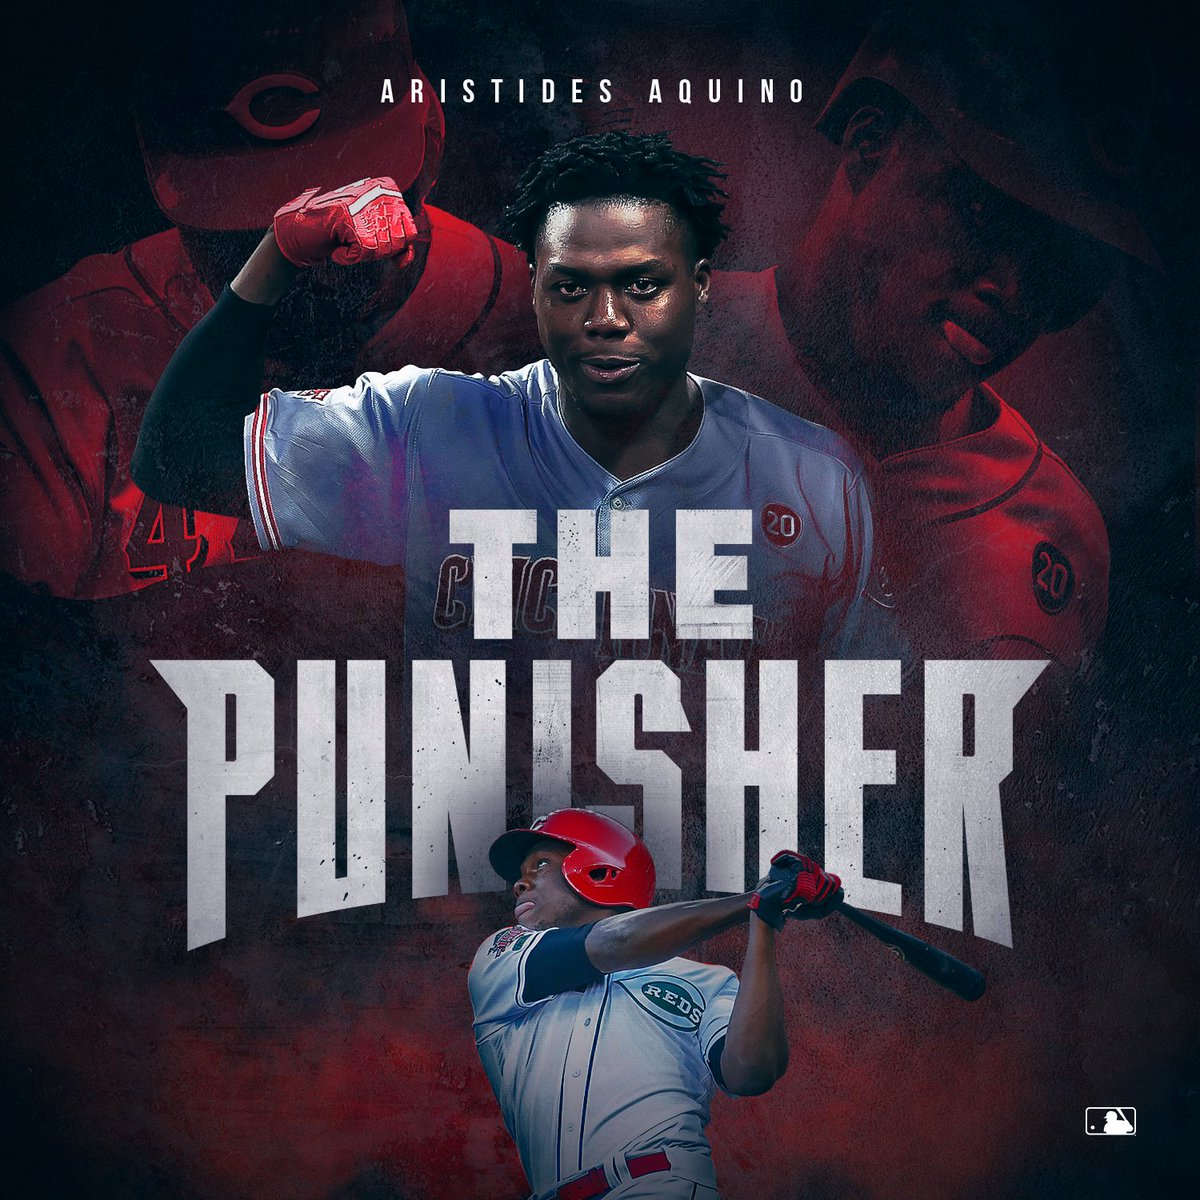 test Twitter Media - 11 homers in 16 games this year. 👀  The Punisher is a walking home run. 💪 https://t.co/oYPtpCiNiG